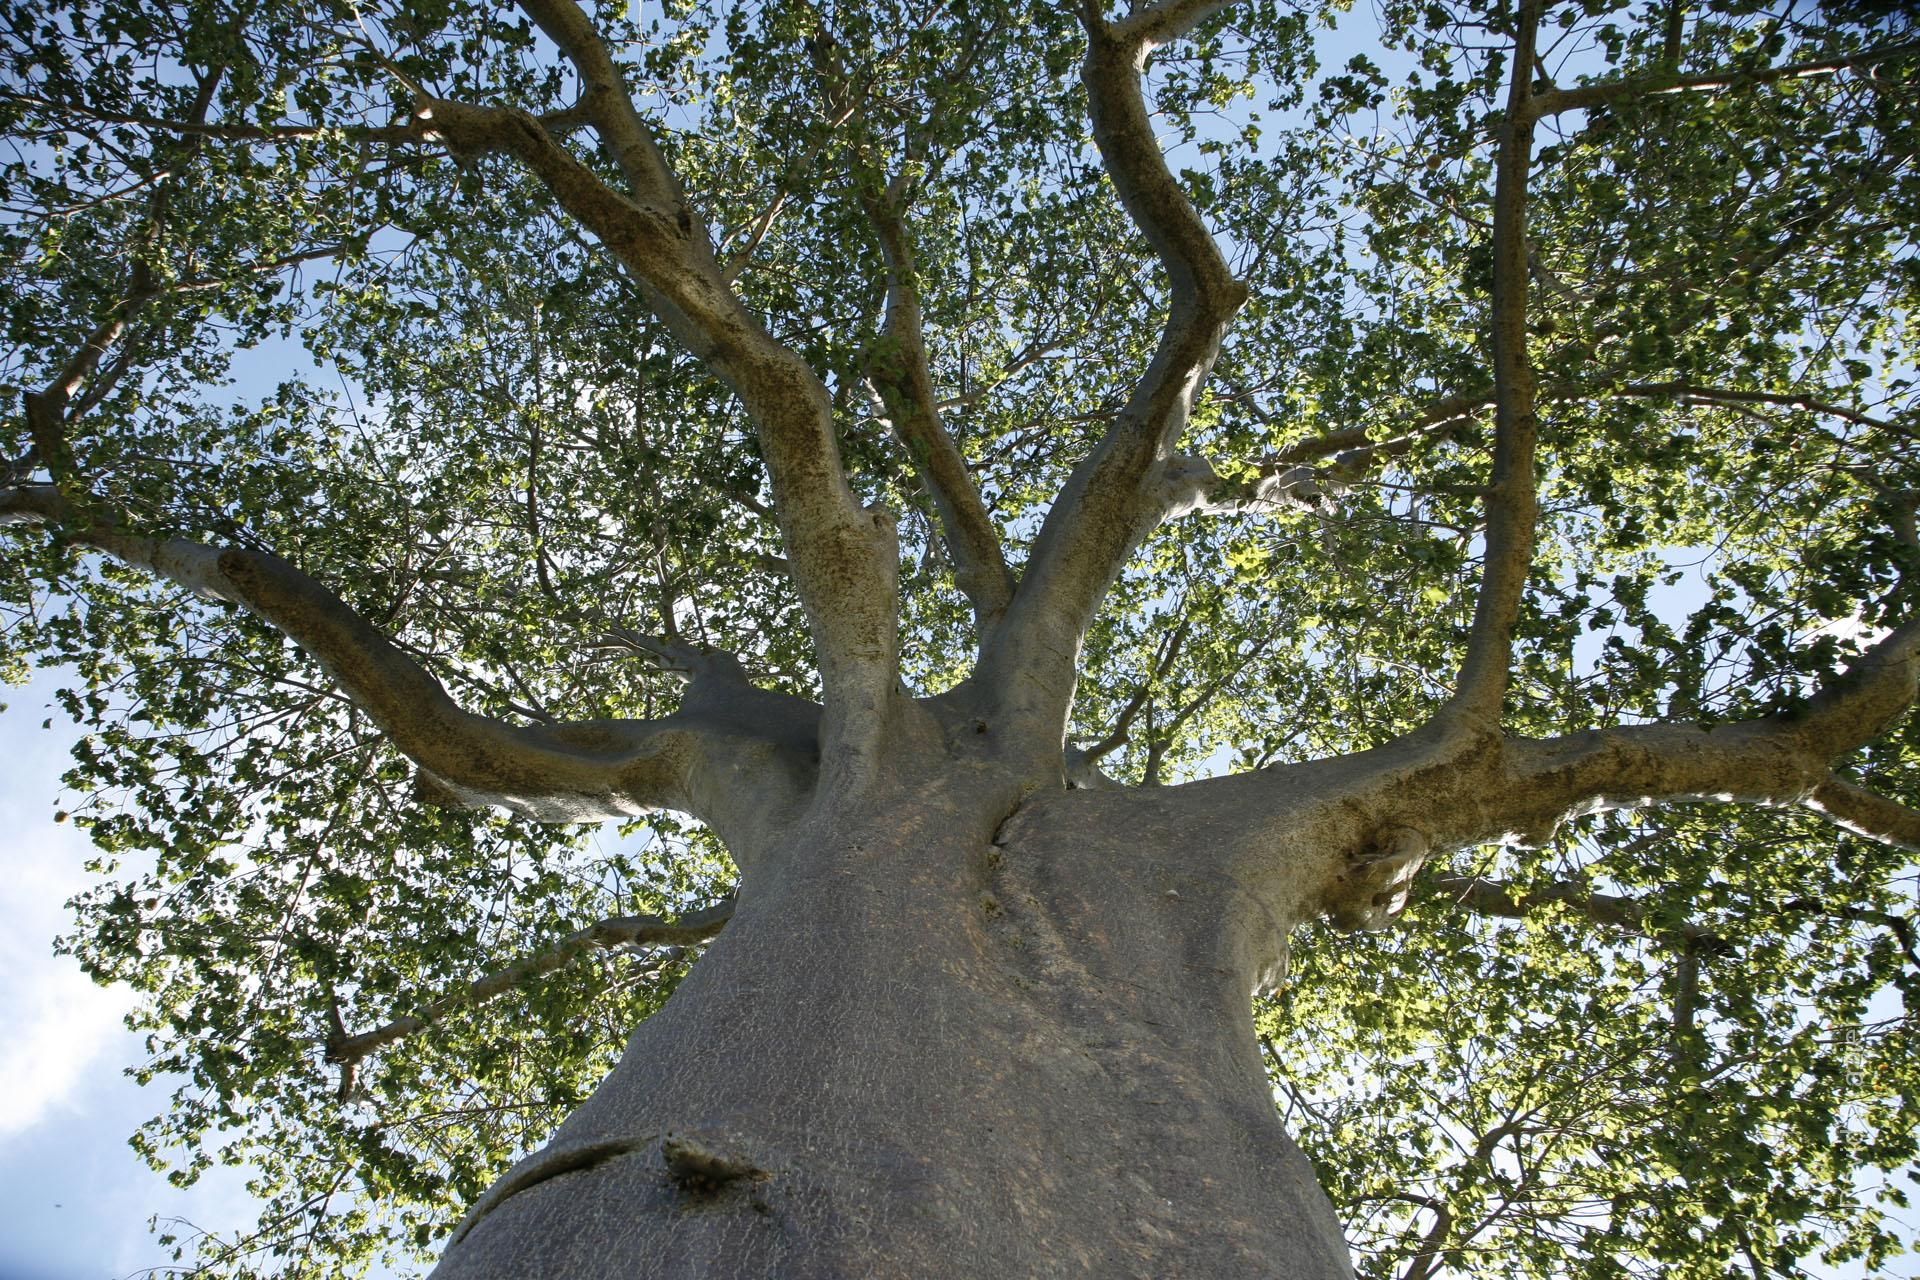 View of baobab tree looking up the trunk into the canopy